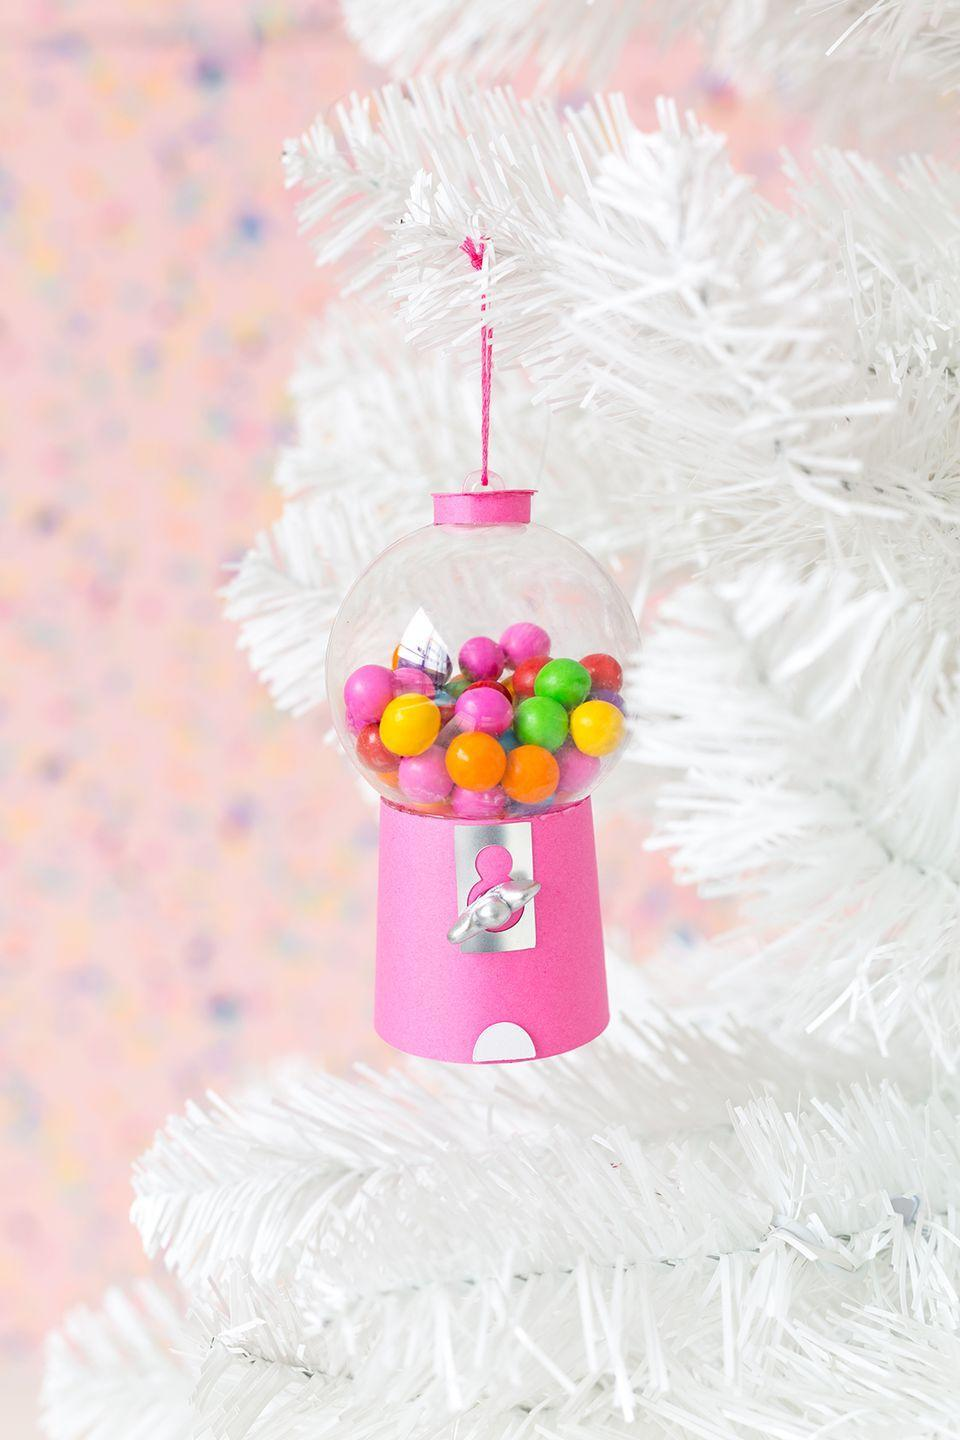 """<p>Another food-themed DIY that looks particularly good on novelty trees, like white and even pale pink. </p><p><em>Get the tutorial at <a href=""""http://www.awwsam.com/2017/11/diy-gumball-machine-ornaments.html"""" rel=""""nofollow noopener"""" target=""""_blank"""" data-ylk=""""slk:Aww Sam"""" class=""""link rapid-noclick-resp"""">Aww Sam</a>.</em></p><p><a class=""""link rapid-noclick-resp"""" href=""""https://www.amazon.com/Plastic-Ball-Ornament-60mm-Clear/dp/B00X8NRRPM/?tag=syn-yahoo-20&ascsubtag=%5Bartid%7C10072.g.34443405%5Bsrc%7Cyahoo-us"""" rel=""""nofollow noopener"""" target=""""_blank"""" data-ylk=""""slk:SHOP CLEAR BALL ORNAMENT"""">SHOP CLEAR BALL ORNAMENT</a></p>"""